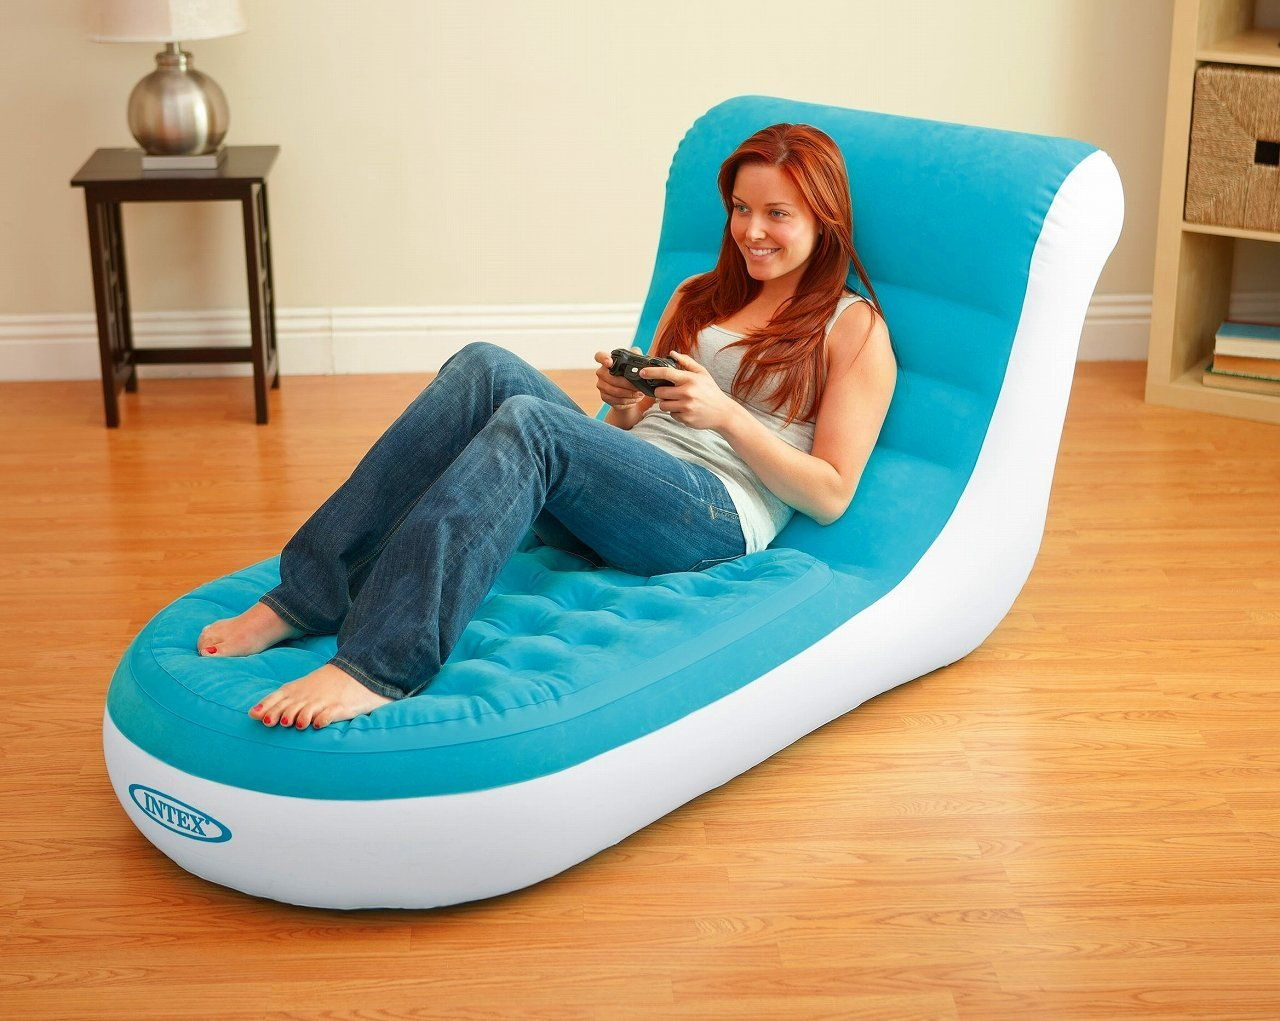 INTEX 68880NP Inflatable Splash Lounge Relaxing Single Air Chair Pool